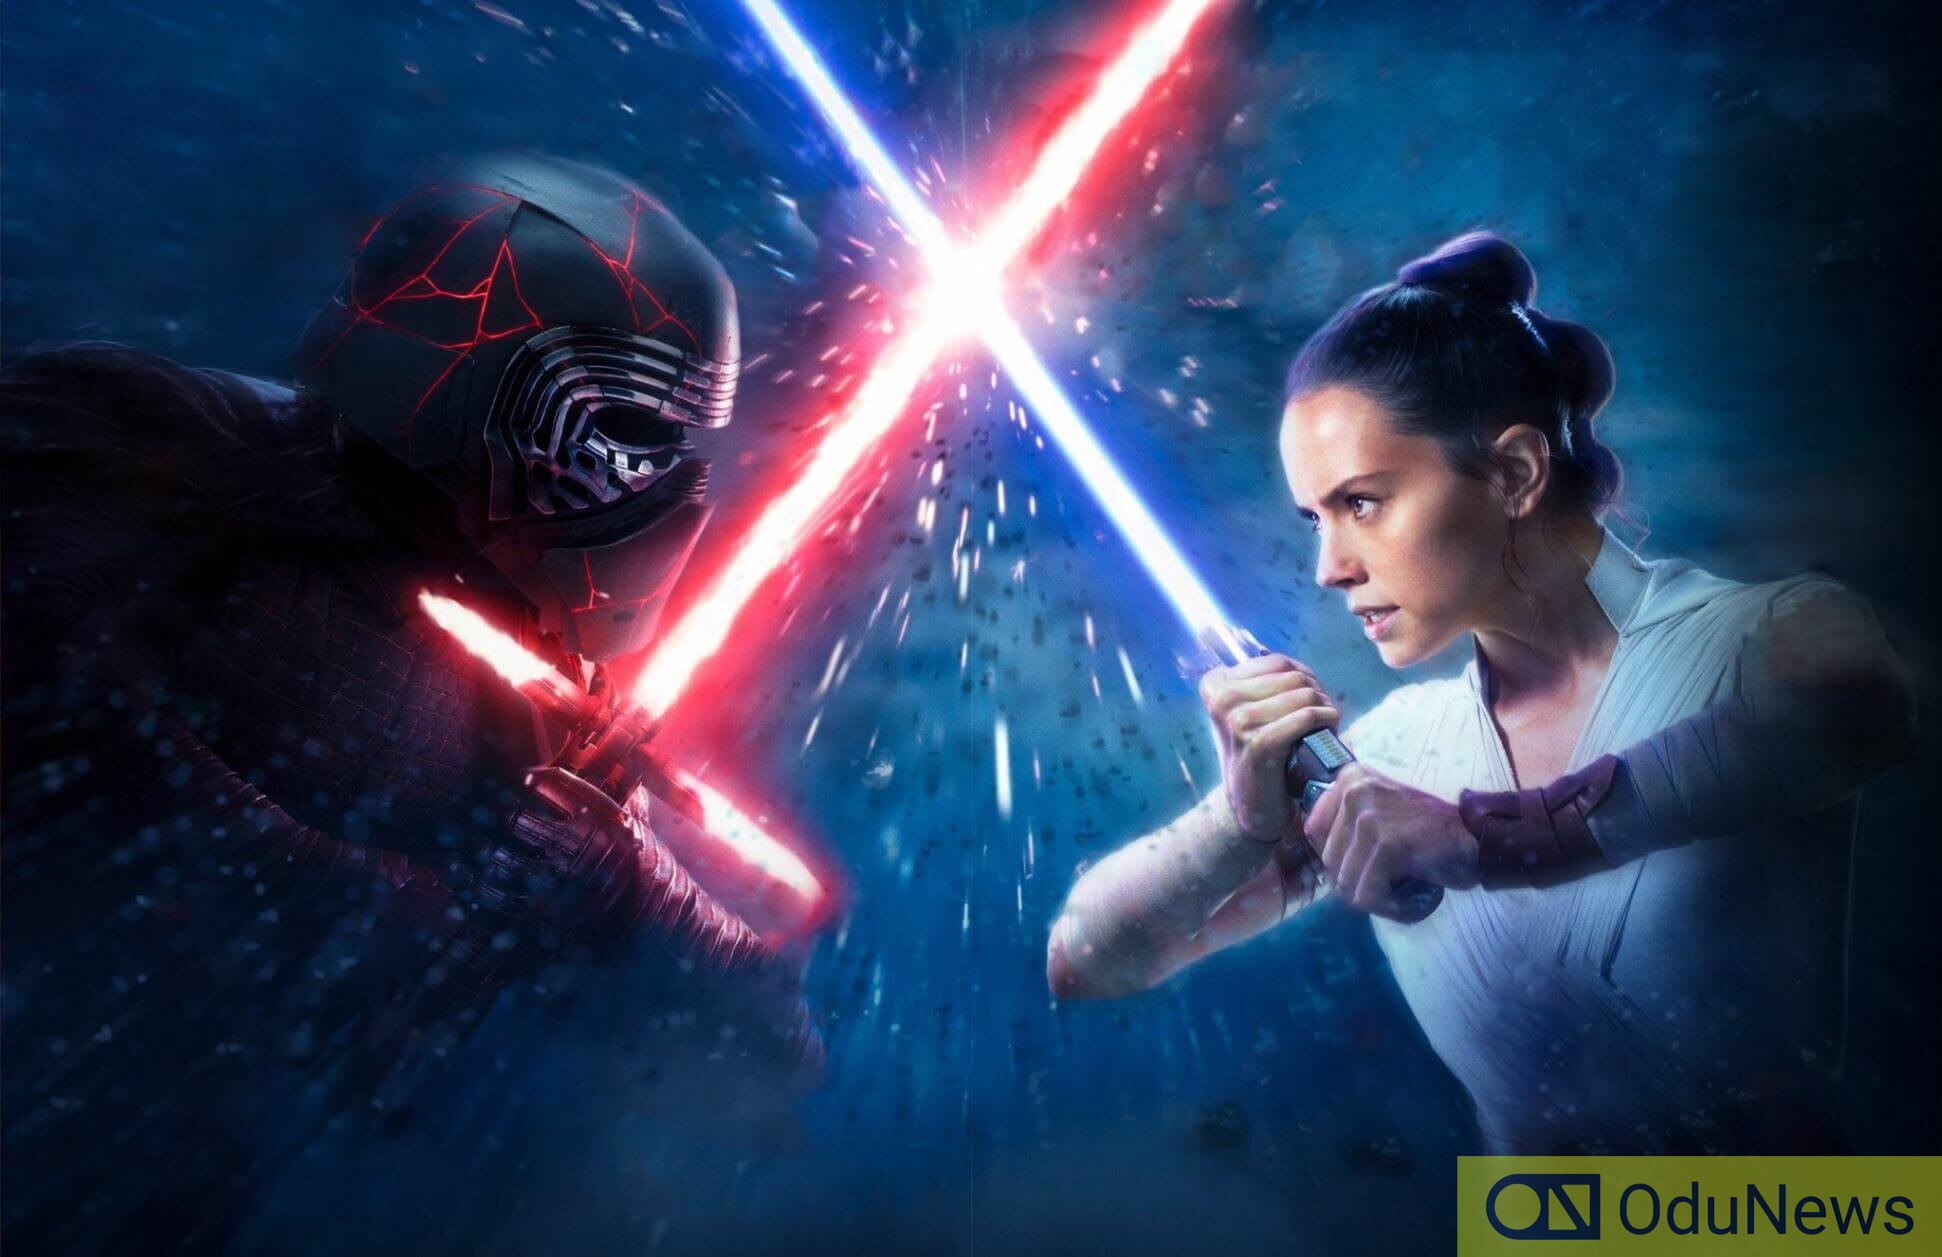 The antagonist and protagonist clash in Star Wars: The Rise of Skywalker